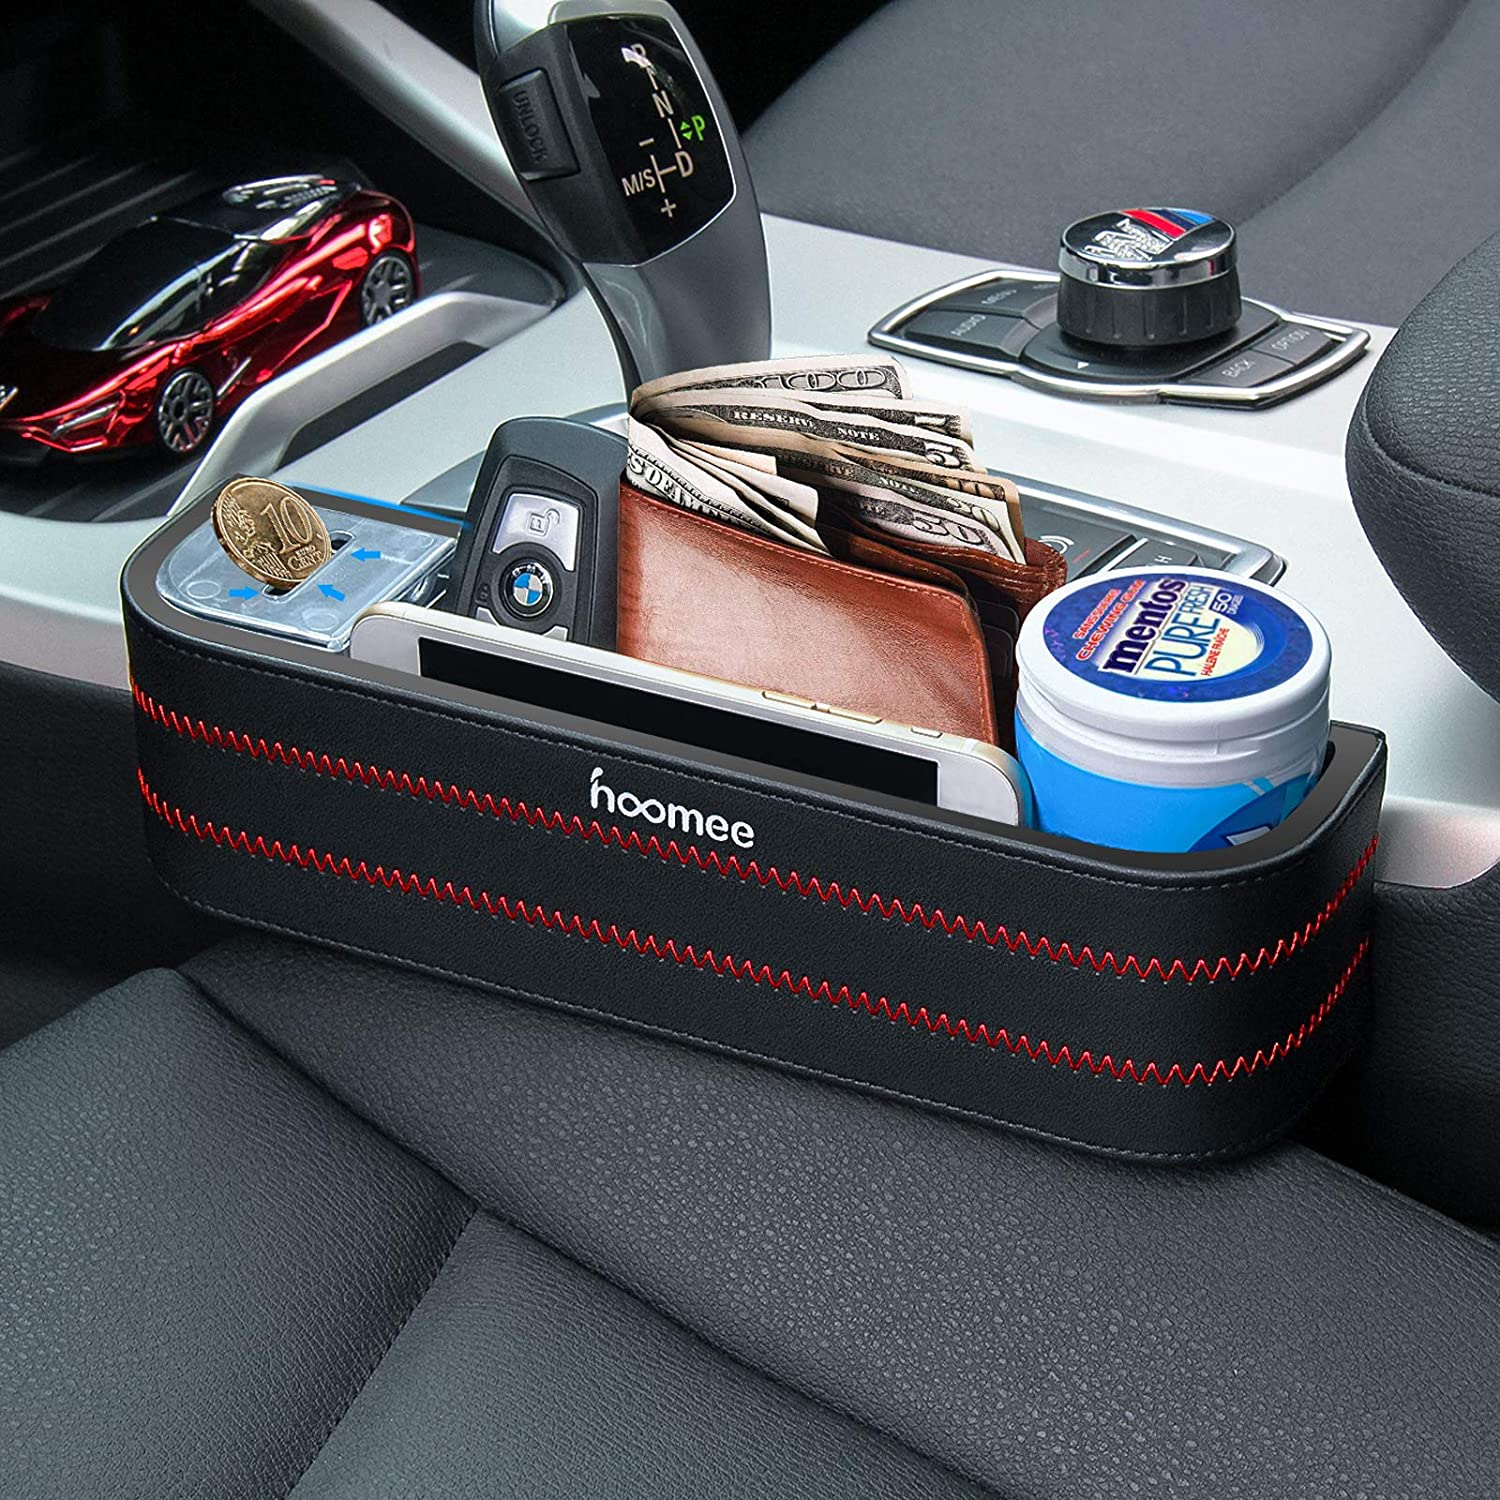 Car Seat Gap Filler Auto Vehicle Seat-Side Pocket Organizer Black-US Extra Storage-Fit Most Cars Coin Catcher HOOMEE Deluxe PU Leather Multi-Functional Console Storage Caddy